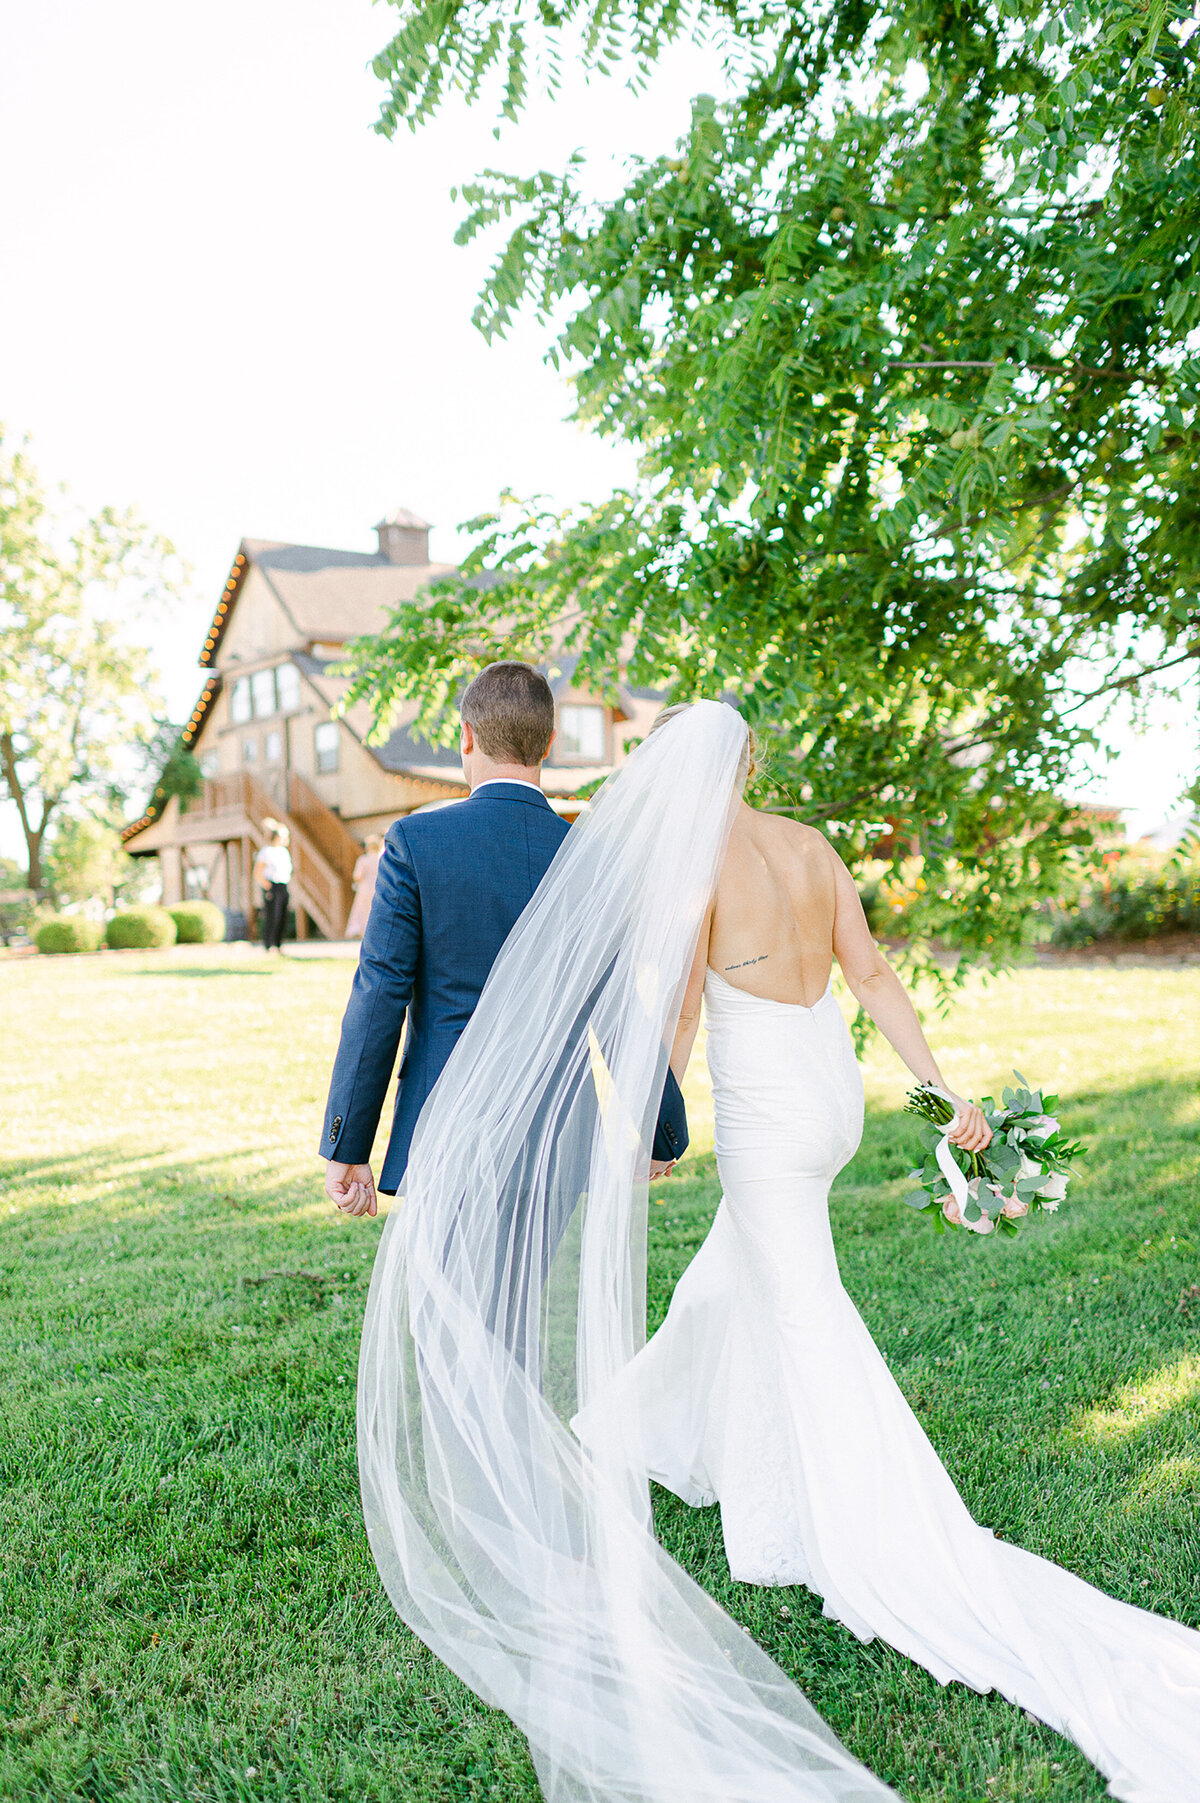 Jennifer Bosak Photography - DC Area Wedding Photography - DC, Virginia, Maryland - Kaitlyn + Jordan - Stone Tower Winery - 42